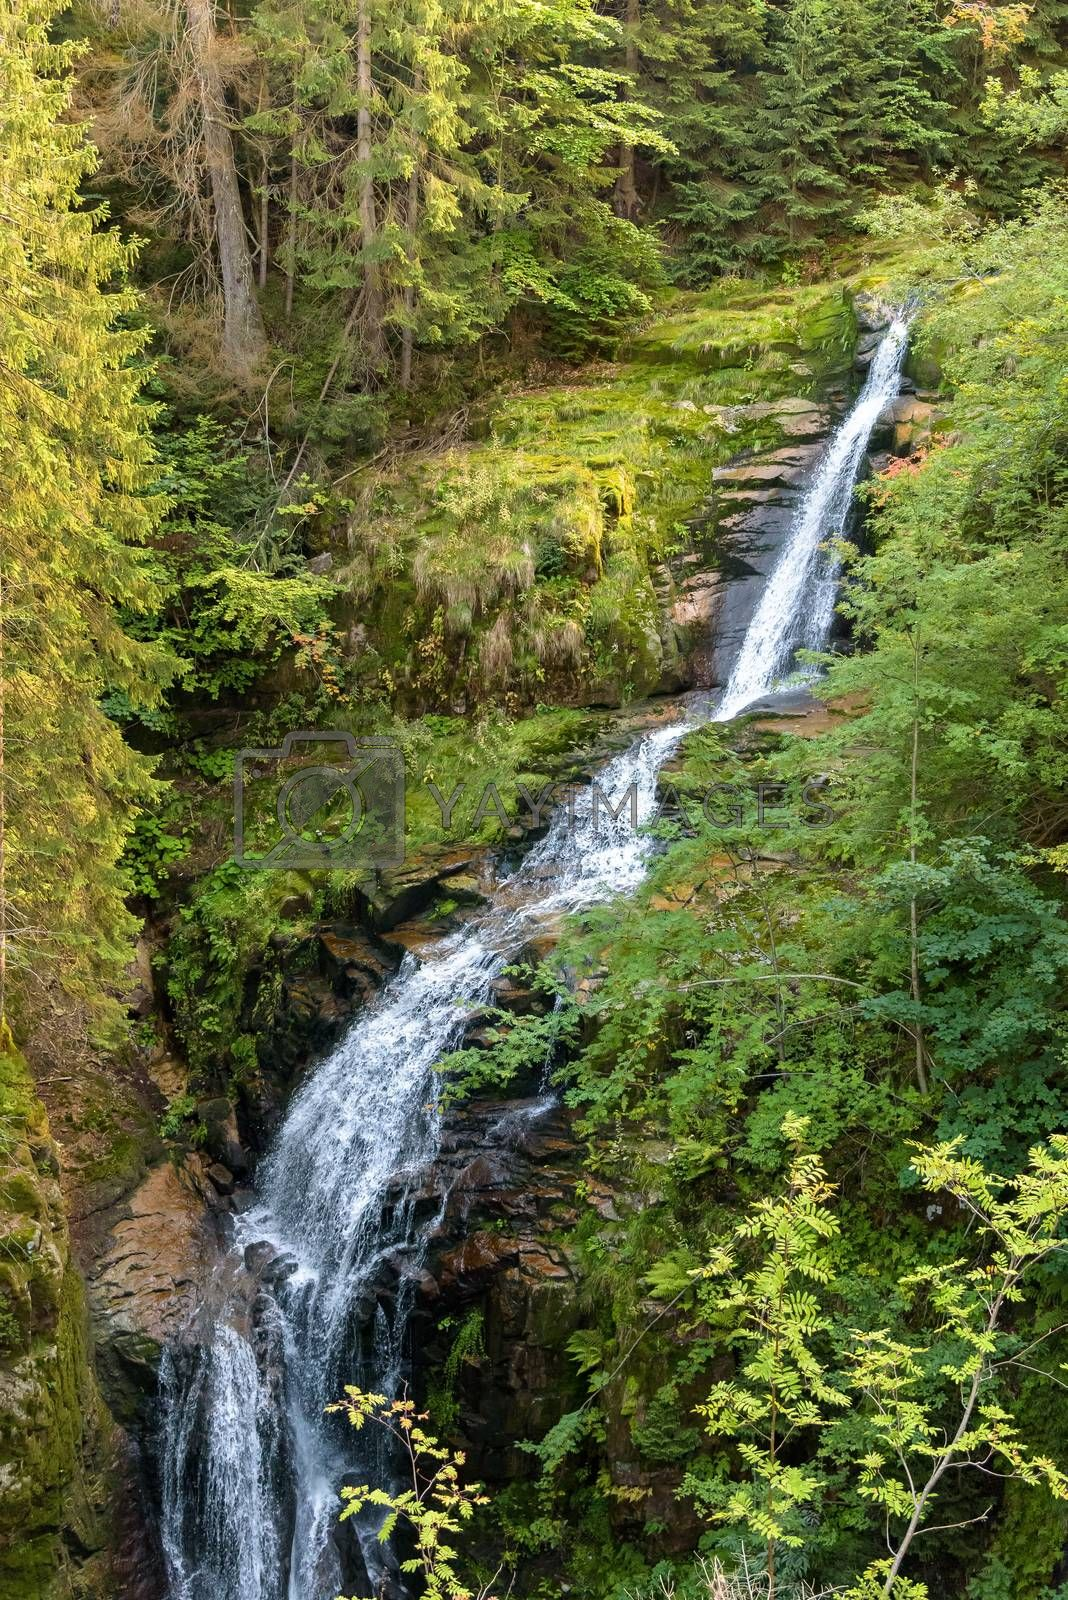 Waterfall of Kamienczyk river - the highest waterfall in polish Giant Mountains